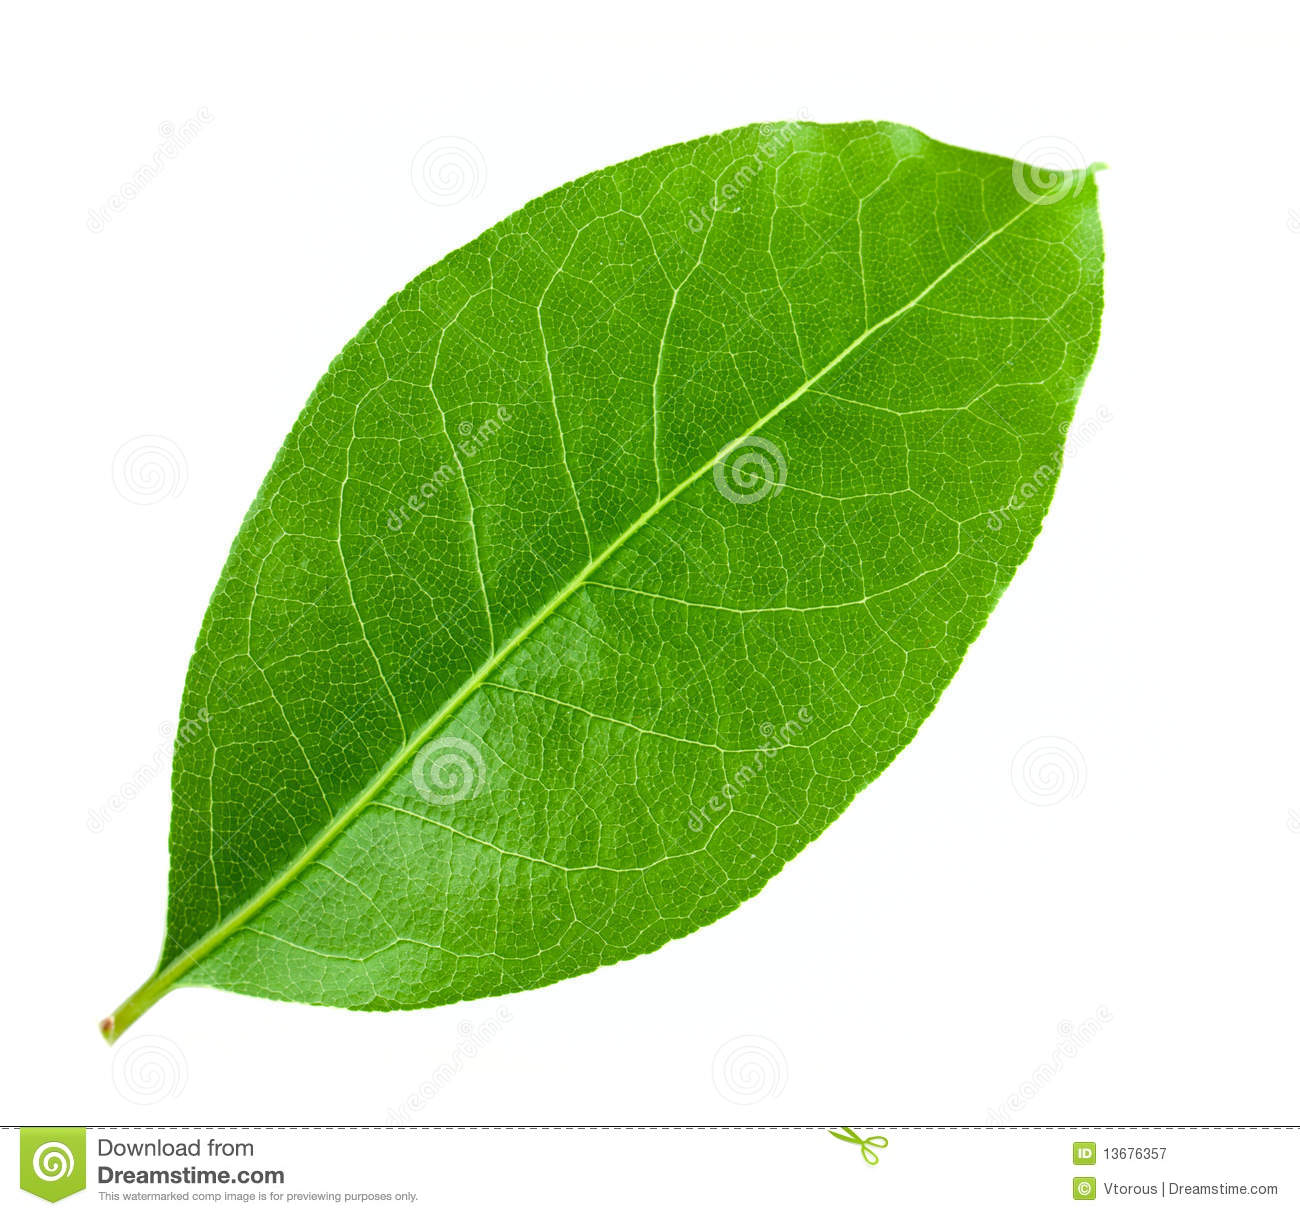 Laurel Leaf Royalty Free Stock Photography - Image: 13676357